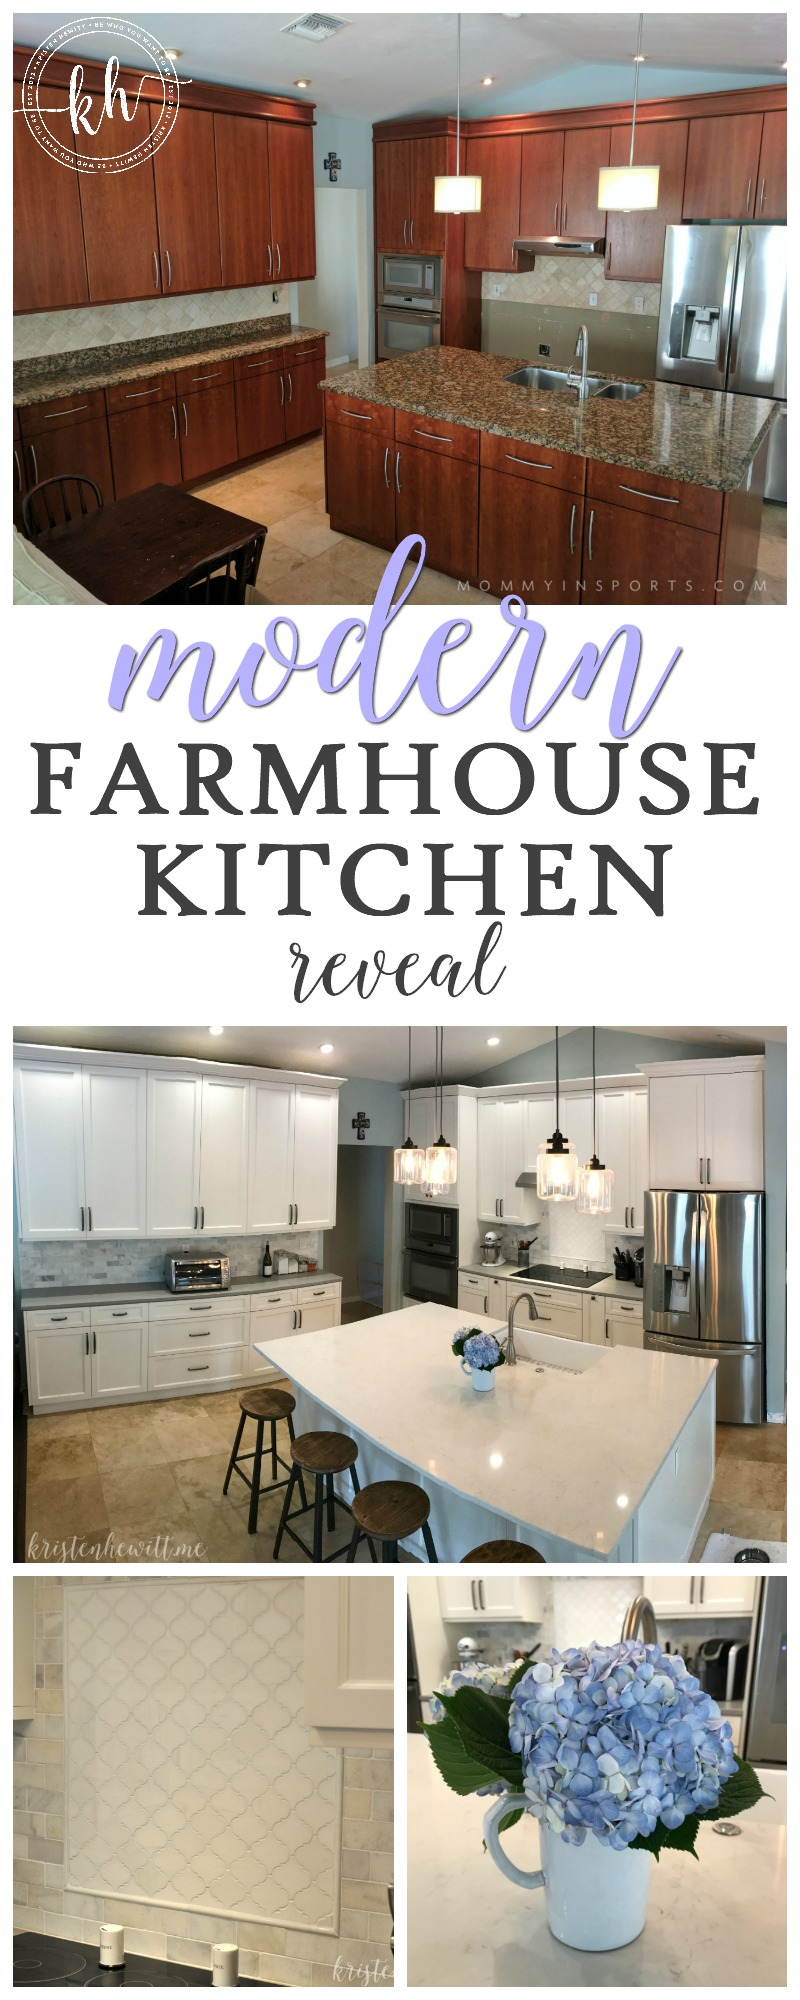 Are you looking to remodel your home and add a modern farmhouse kitchen? Check out what we did and get some design inspiration!